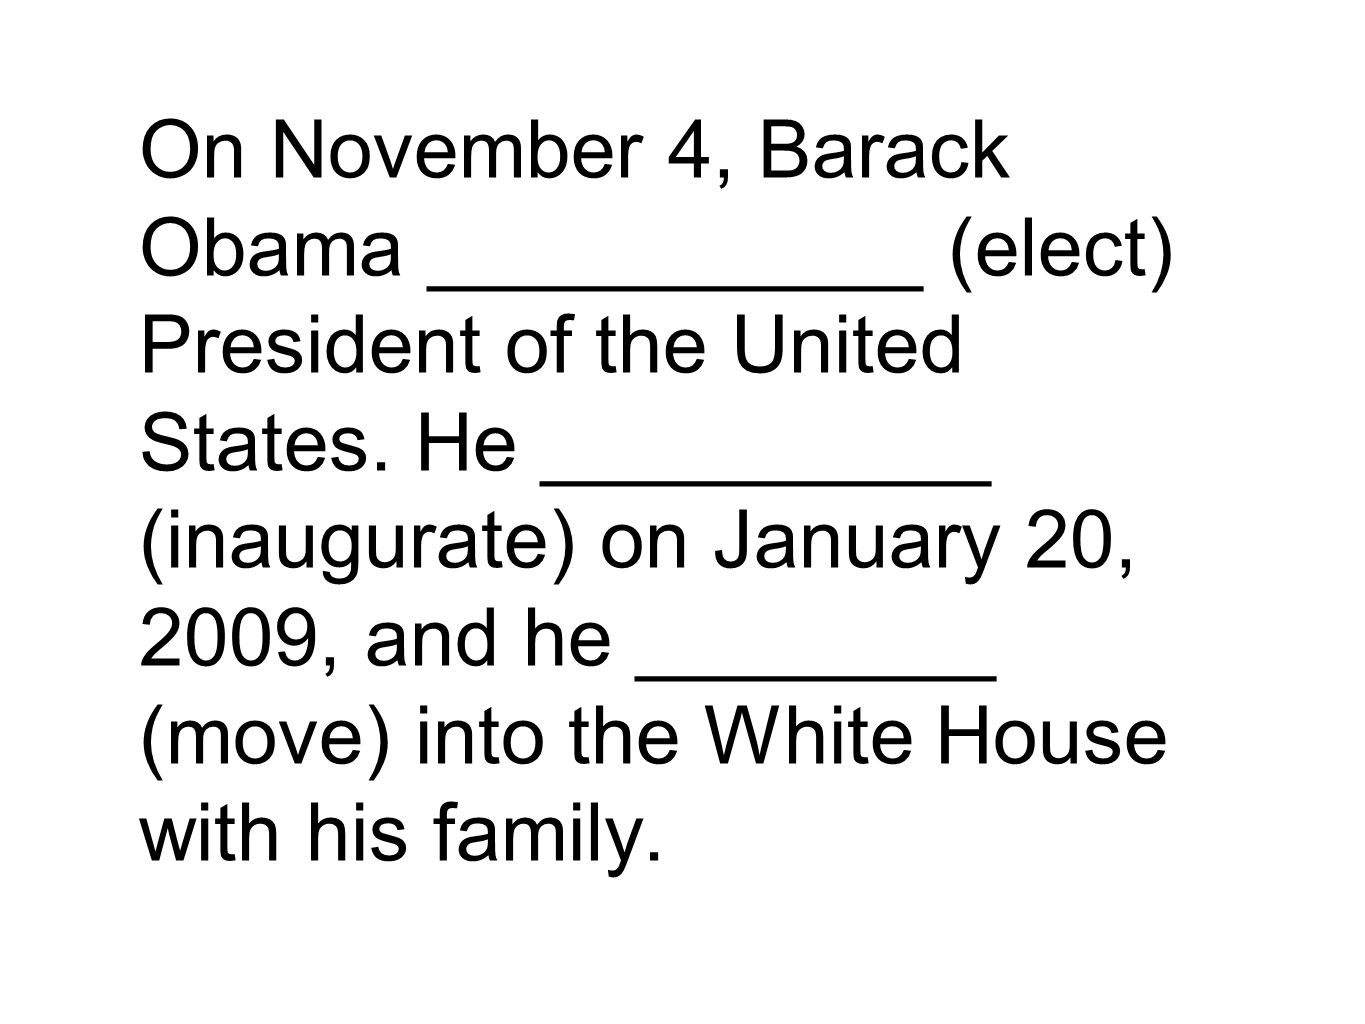 On November 4, Barack Obama ___________ (elect) President of the United States.